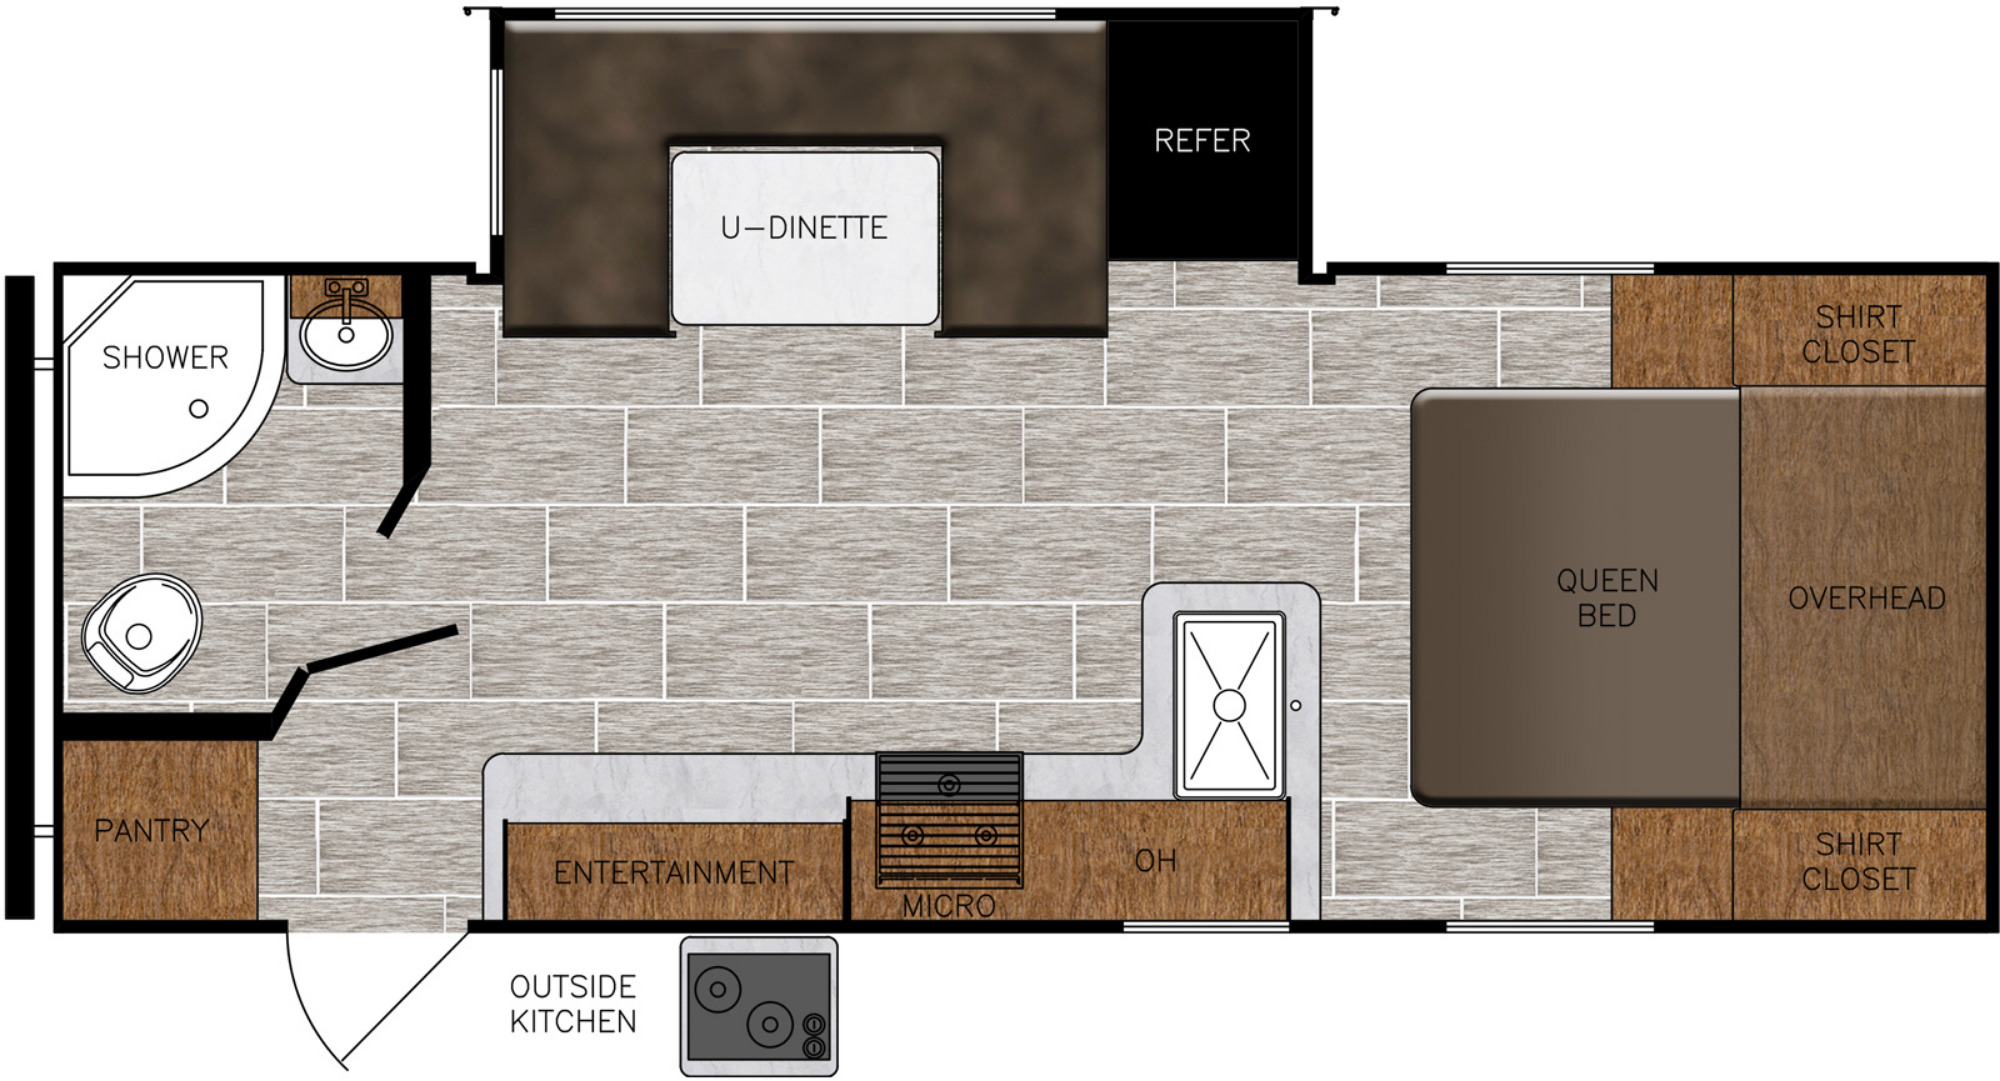 View Floor Plan for 2021 PRIME TIME TRACER 22RBS